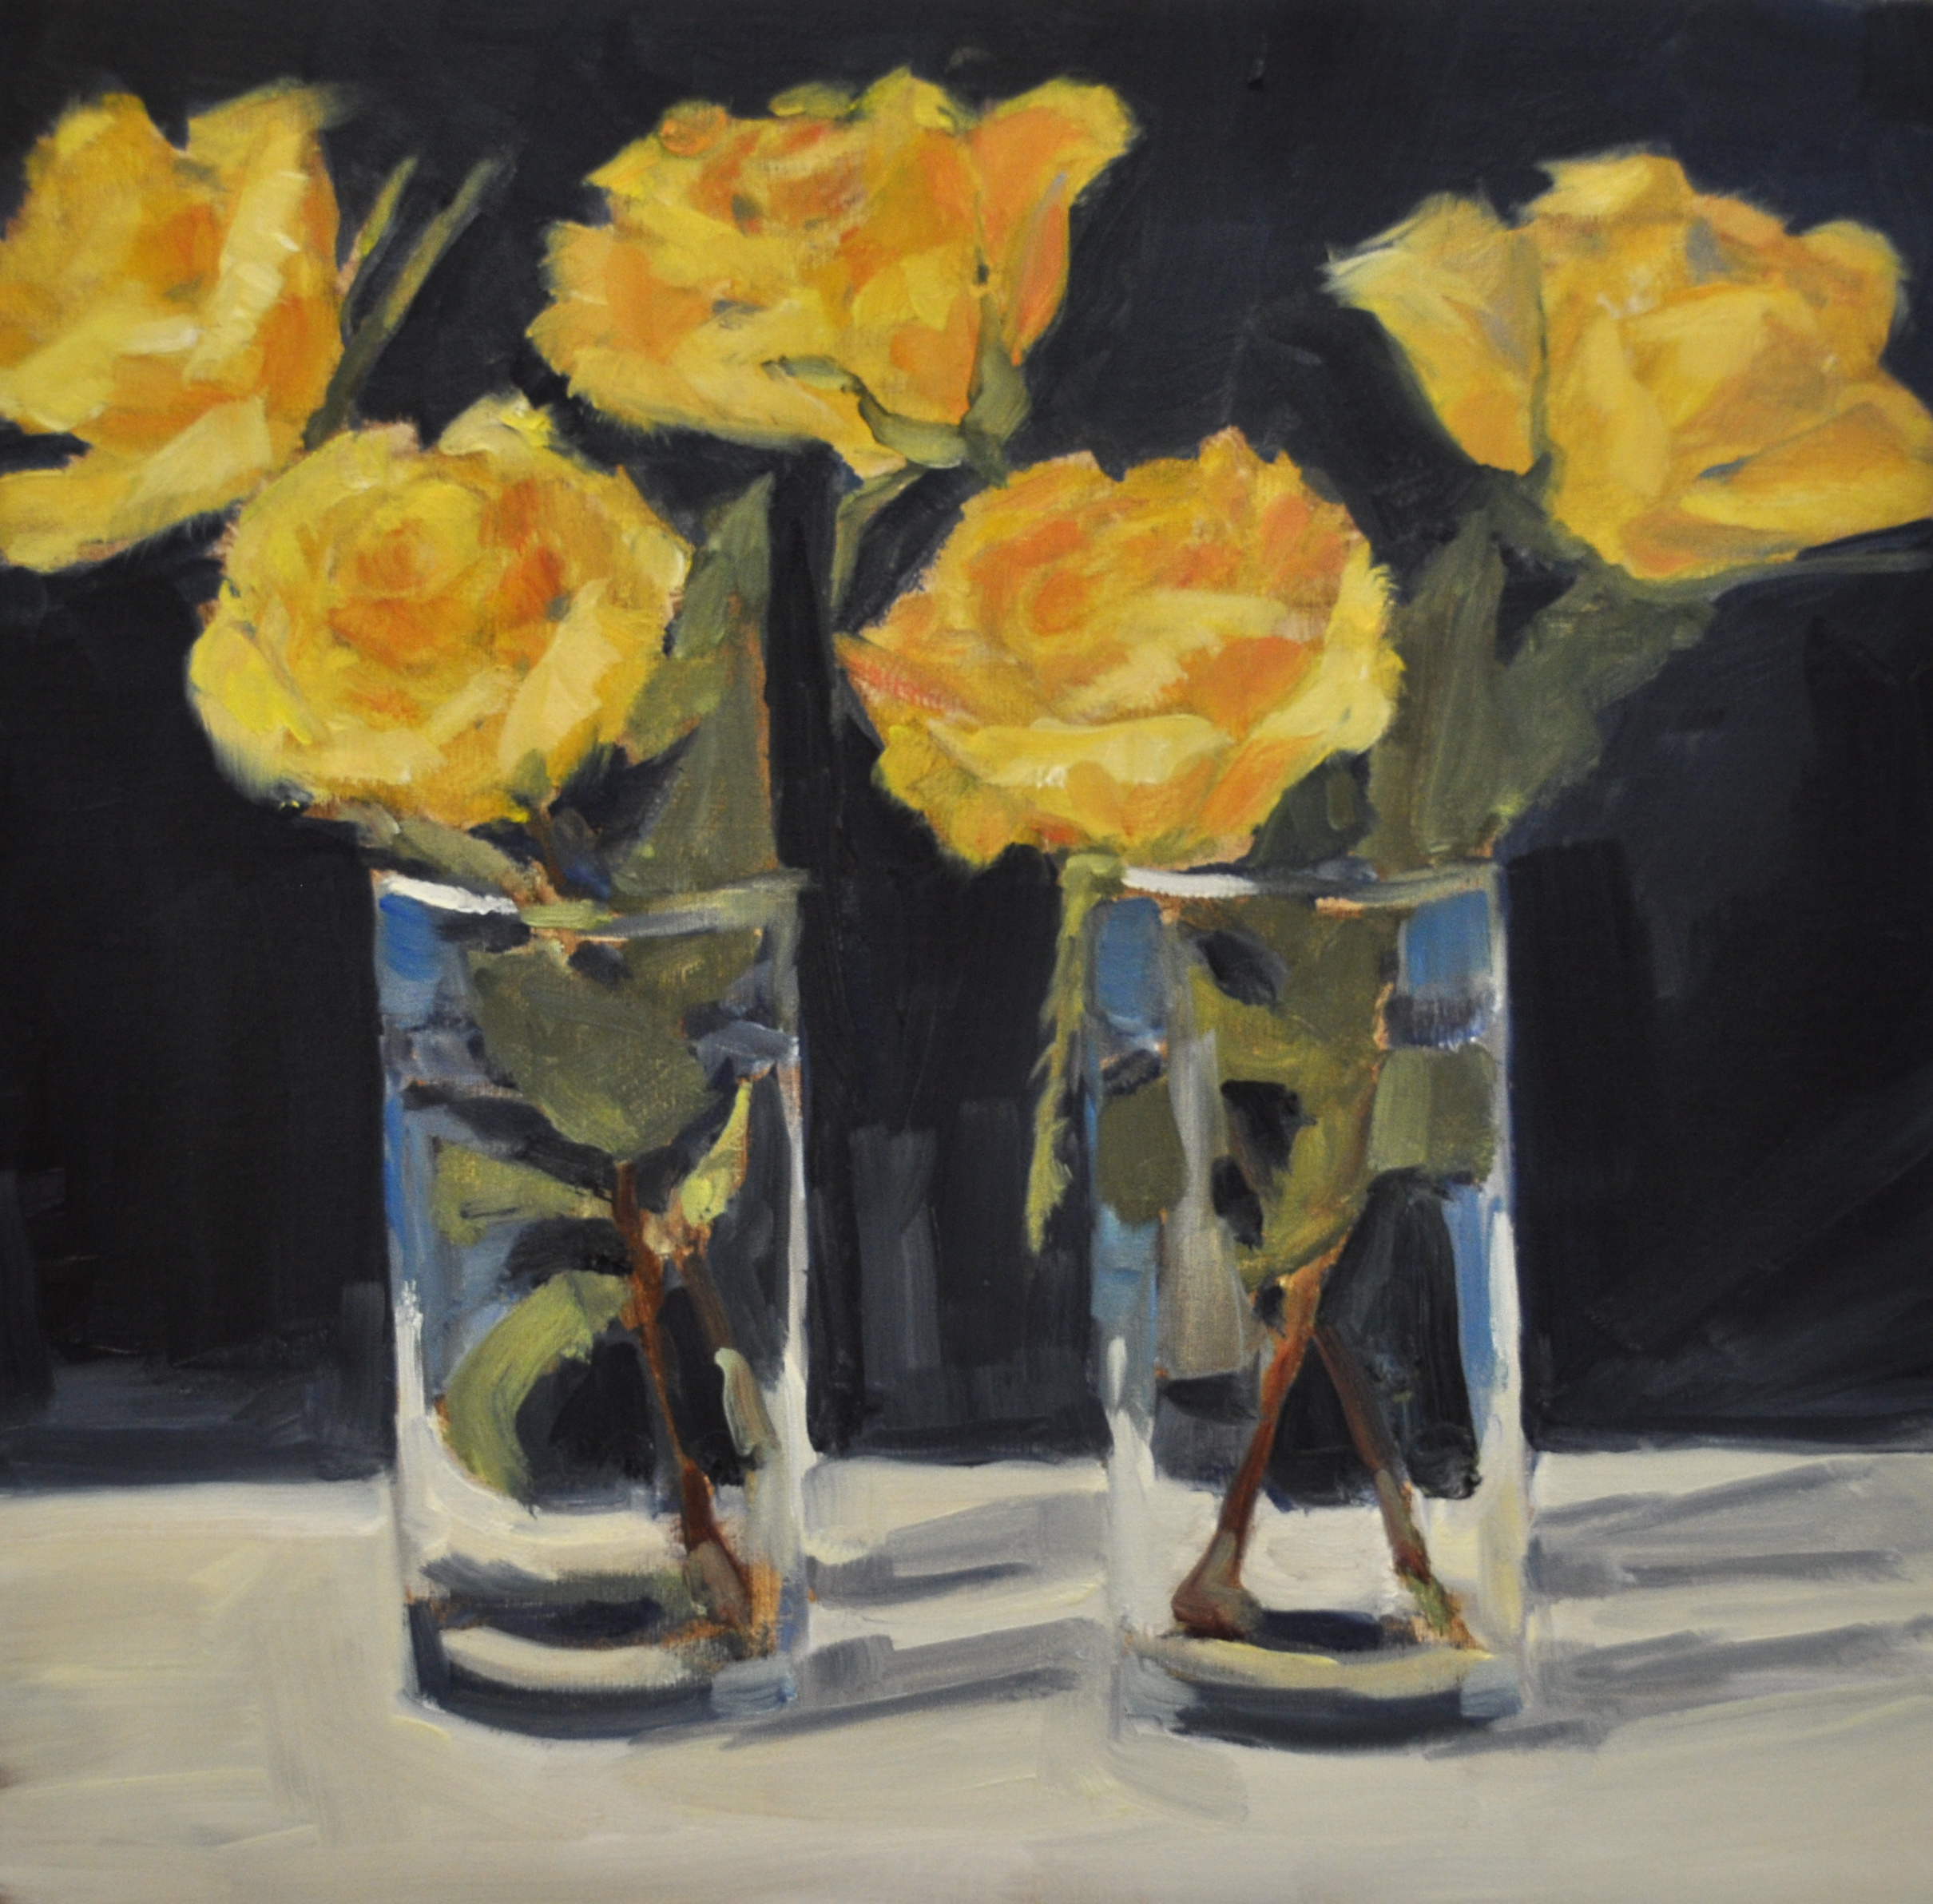 Five Yellows, Oil on Linen, 12 x 12, available